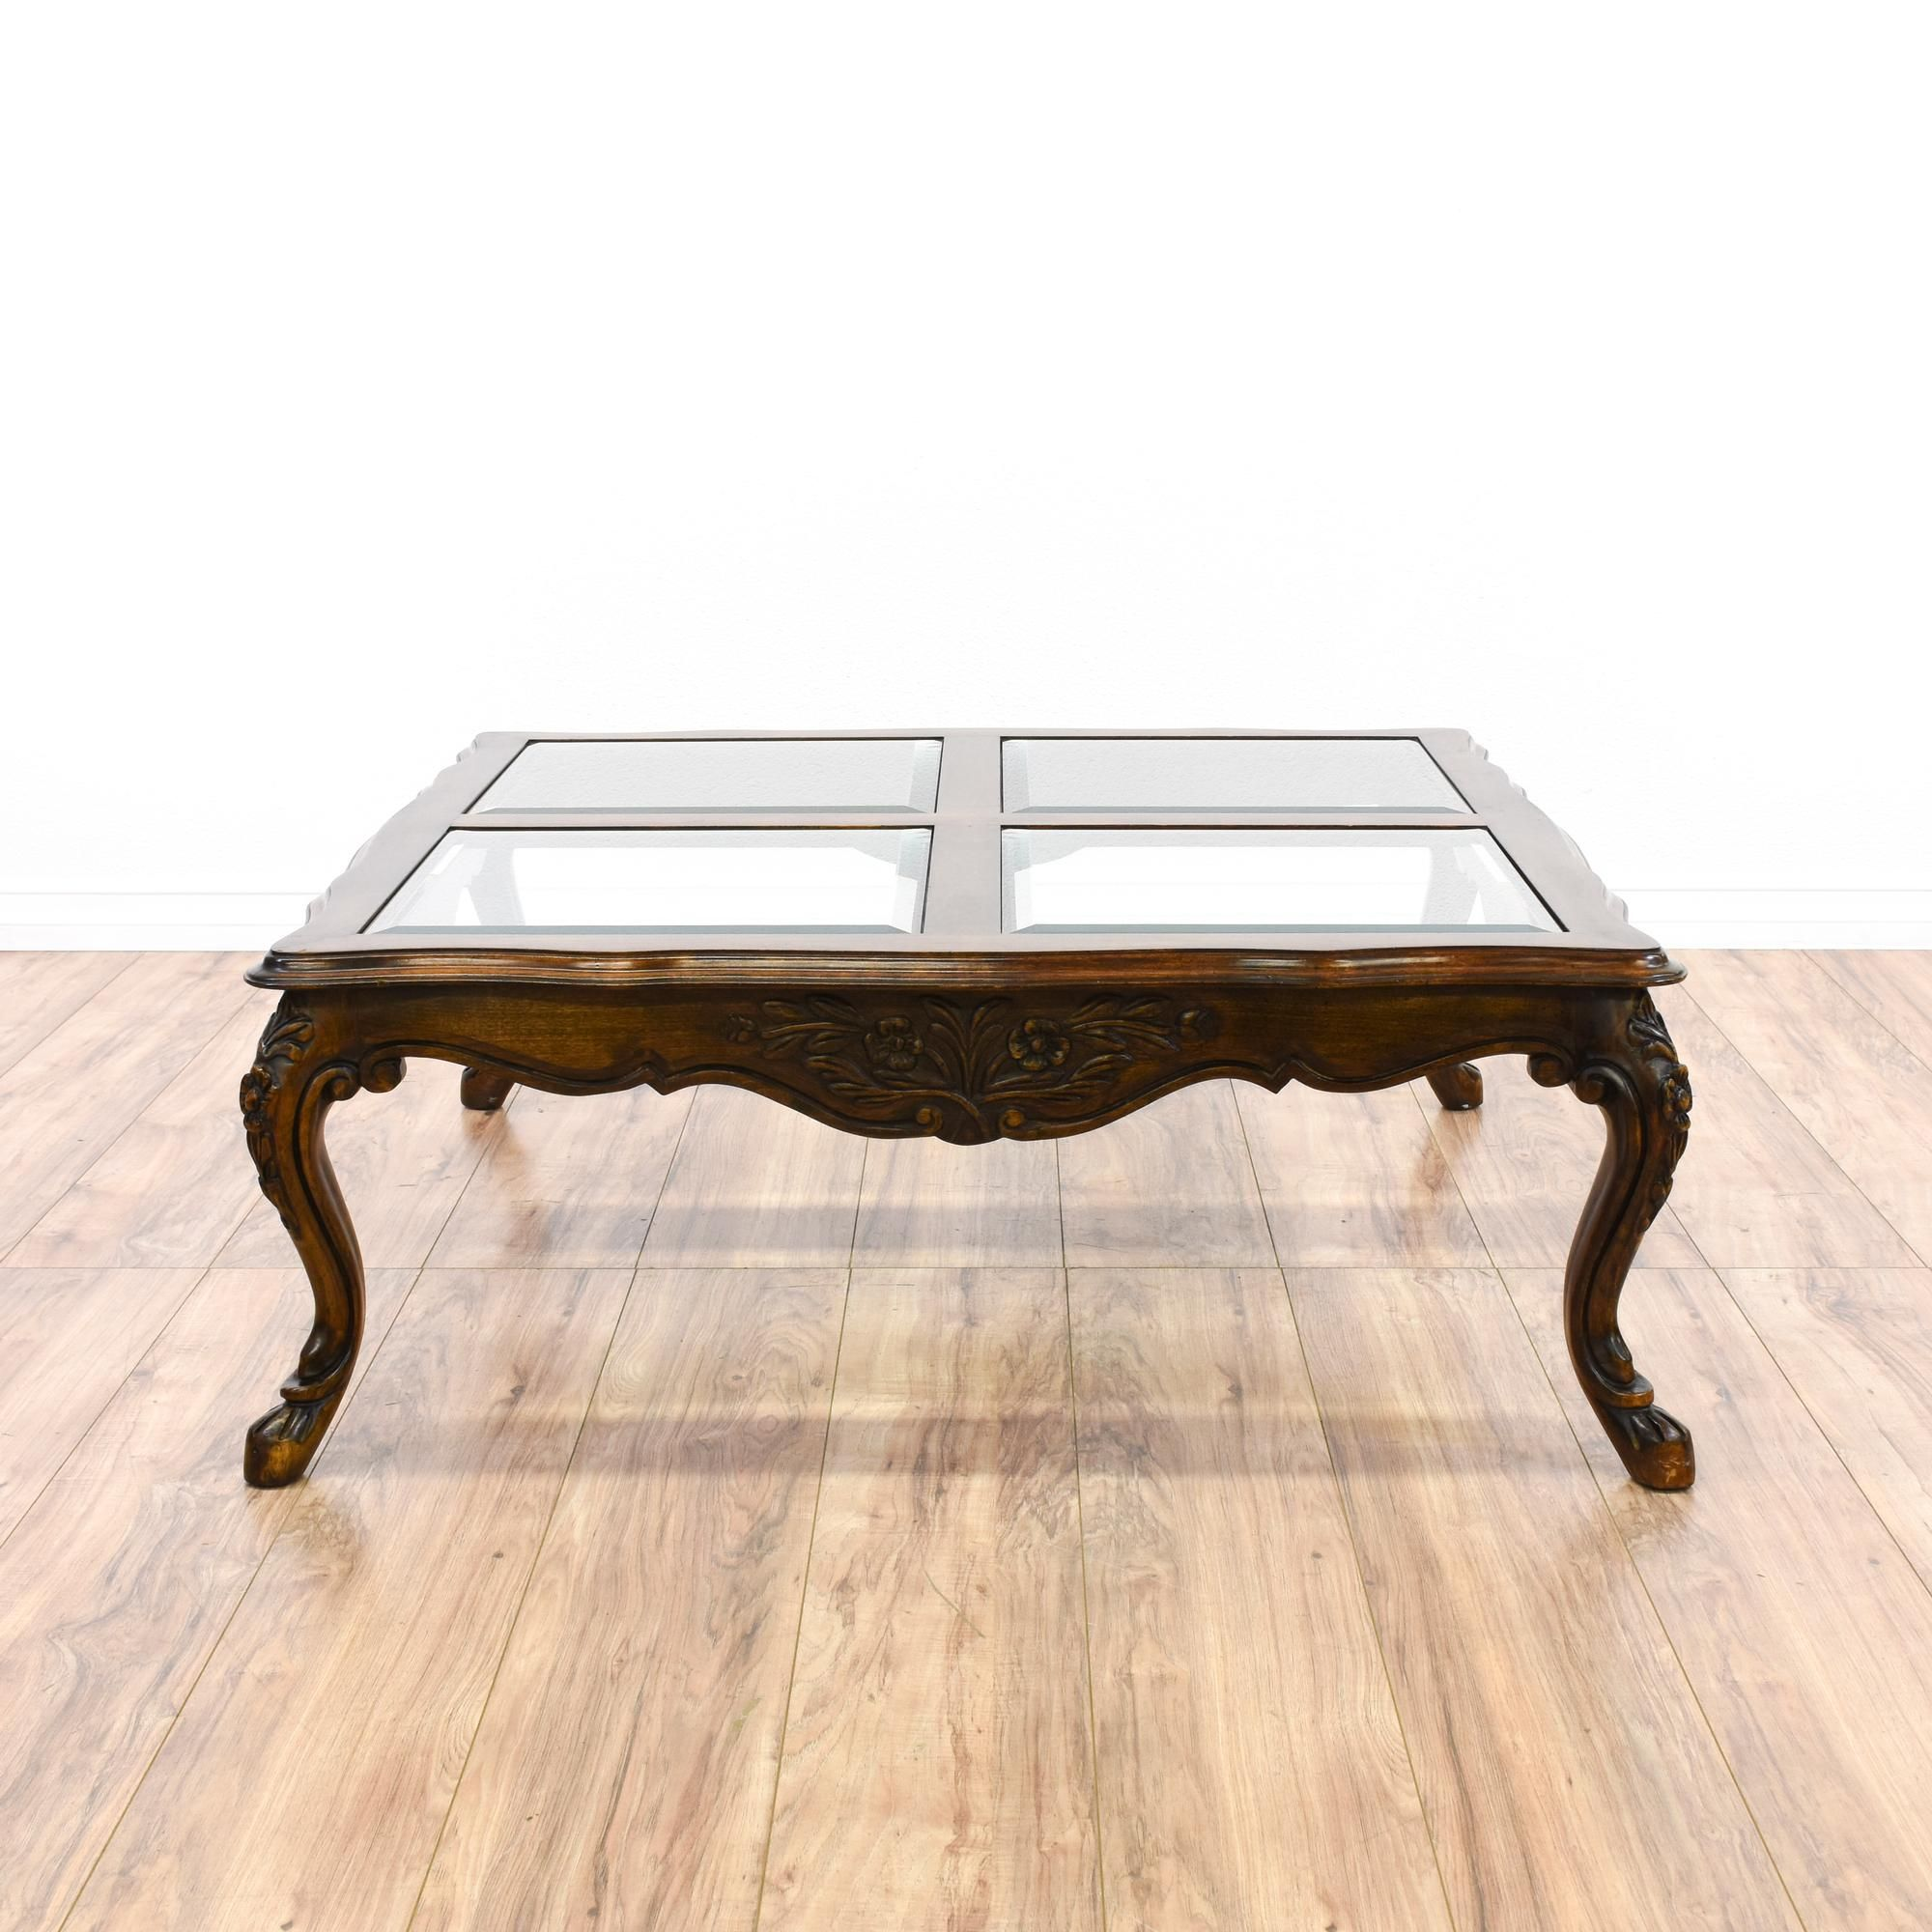 This Coffee Table Is Featured In A Solid Wood With A Glossy Walnut Finish This Traditional Style Cocktail Table Has A Glass T Coffee Table Vintage Table Table